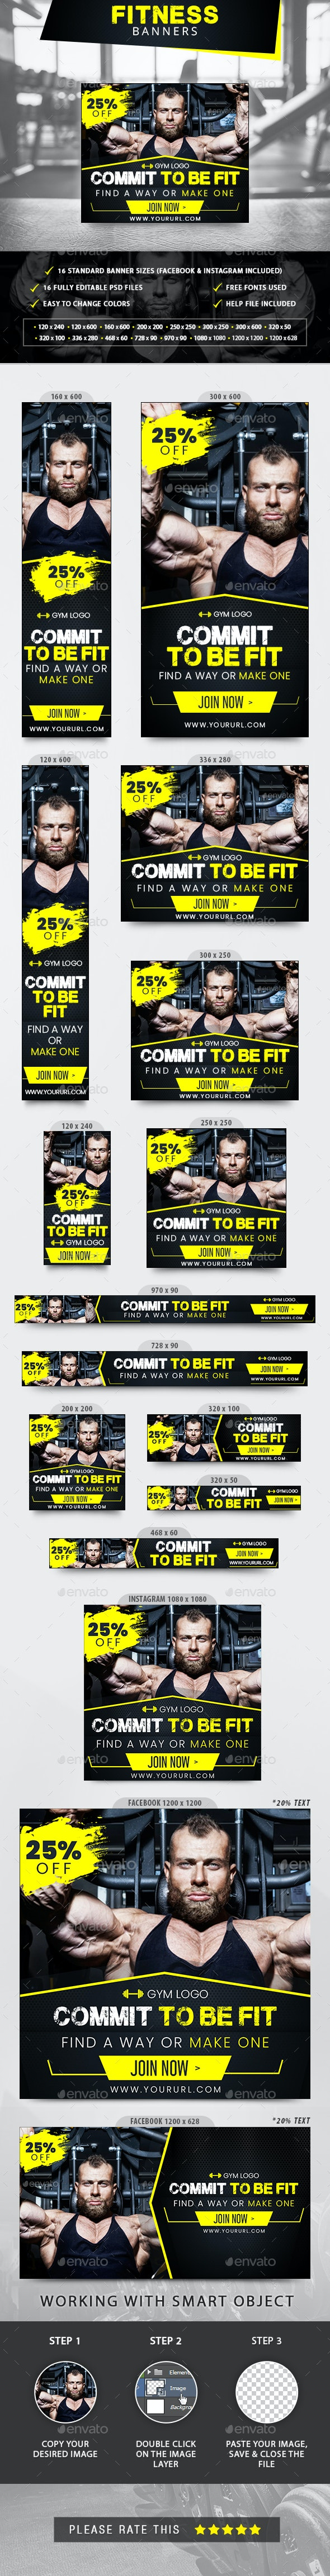 Fitness Banners - Banners & Ads Web Elements